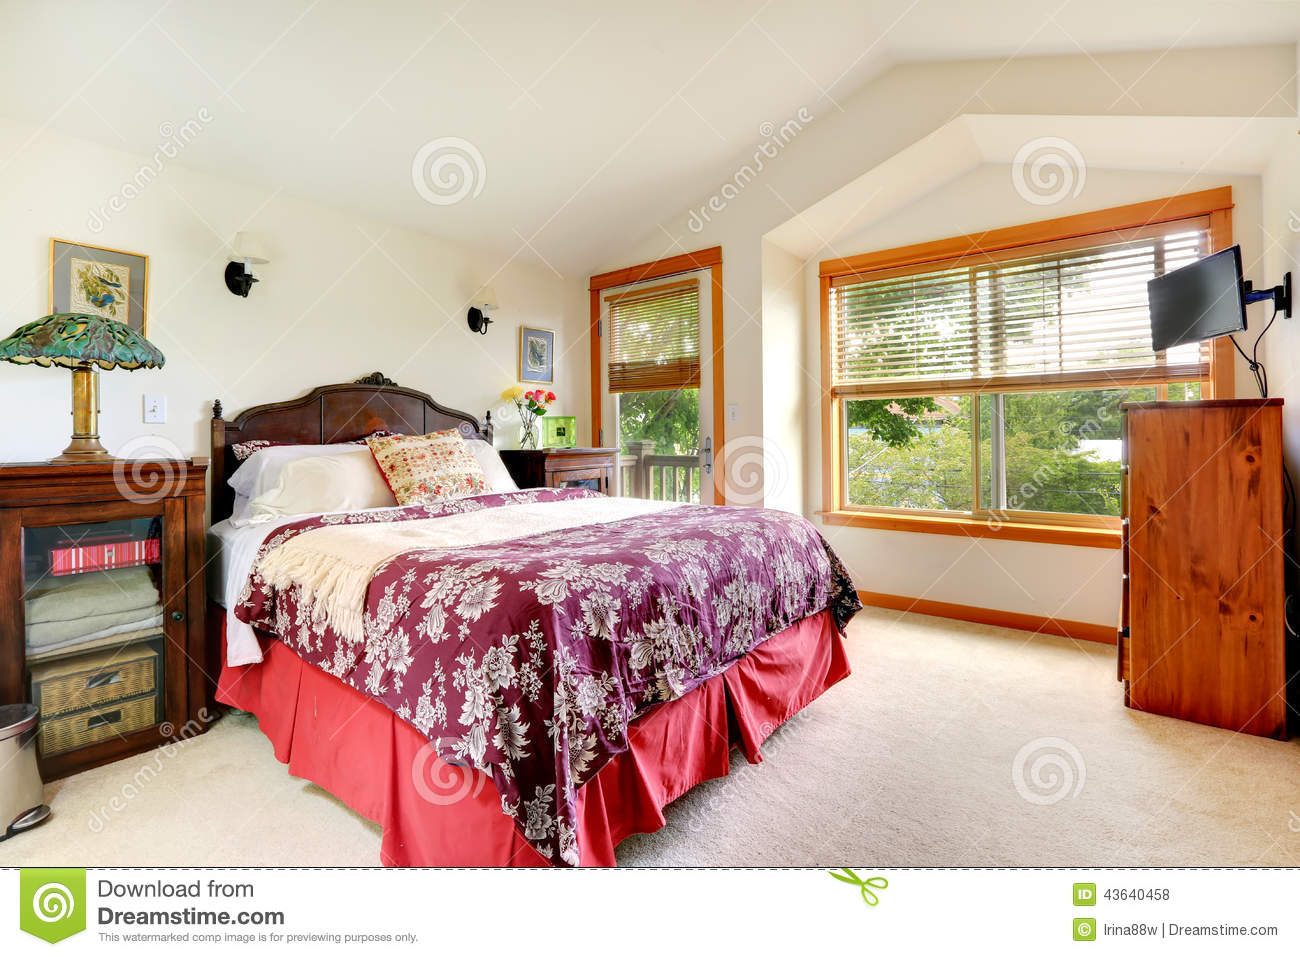 Int rieur de chambre coucher dans la maison am ricaine photo stock image 43640458 for Interieur maison americaine